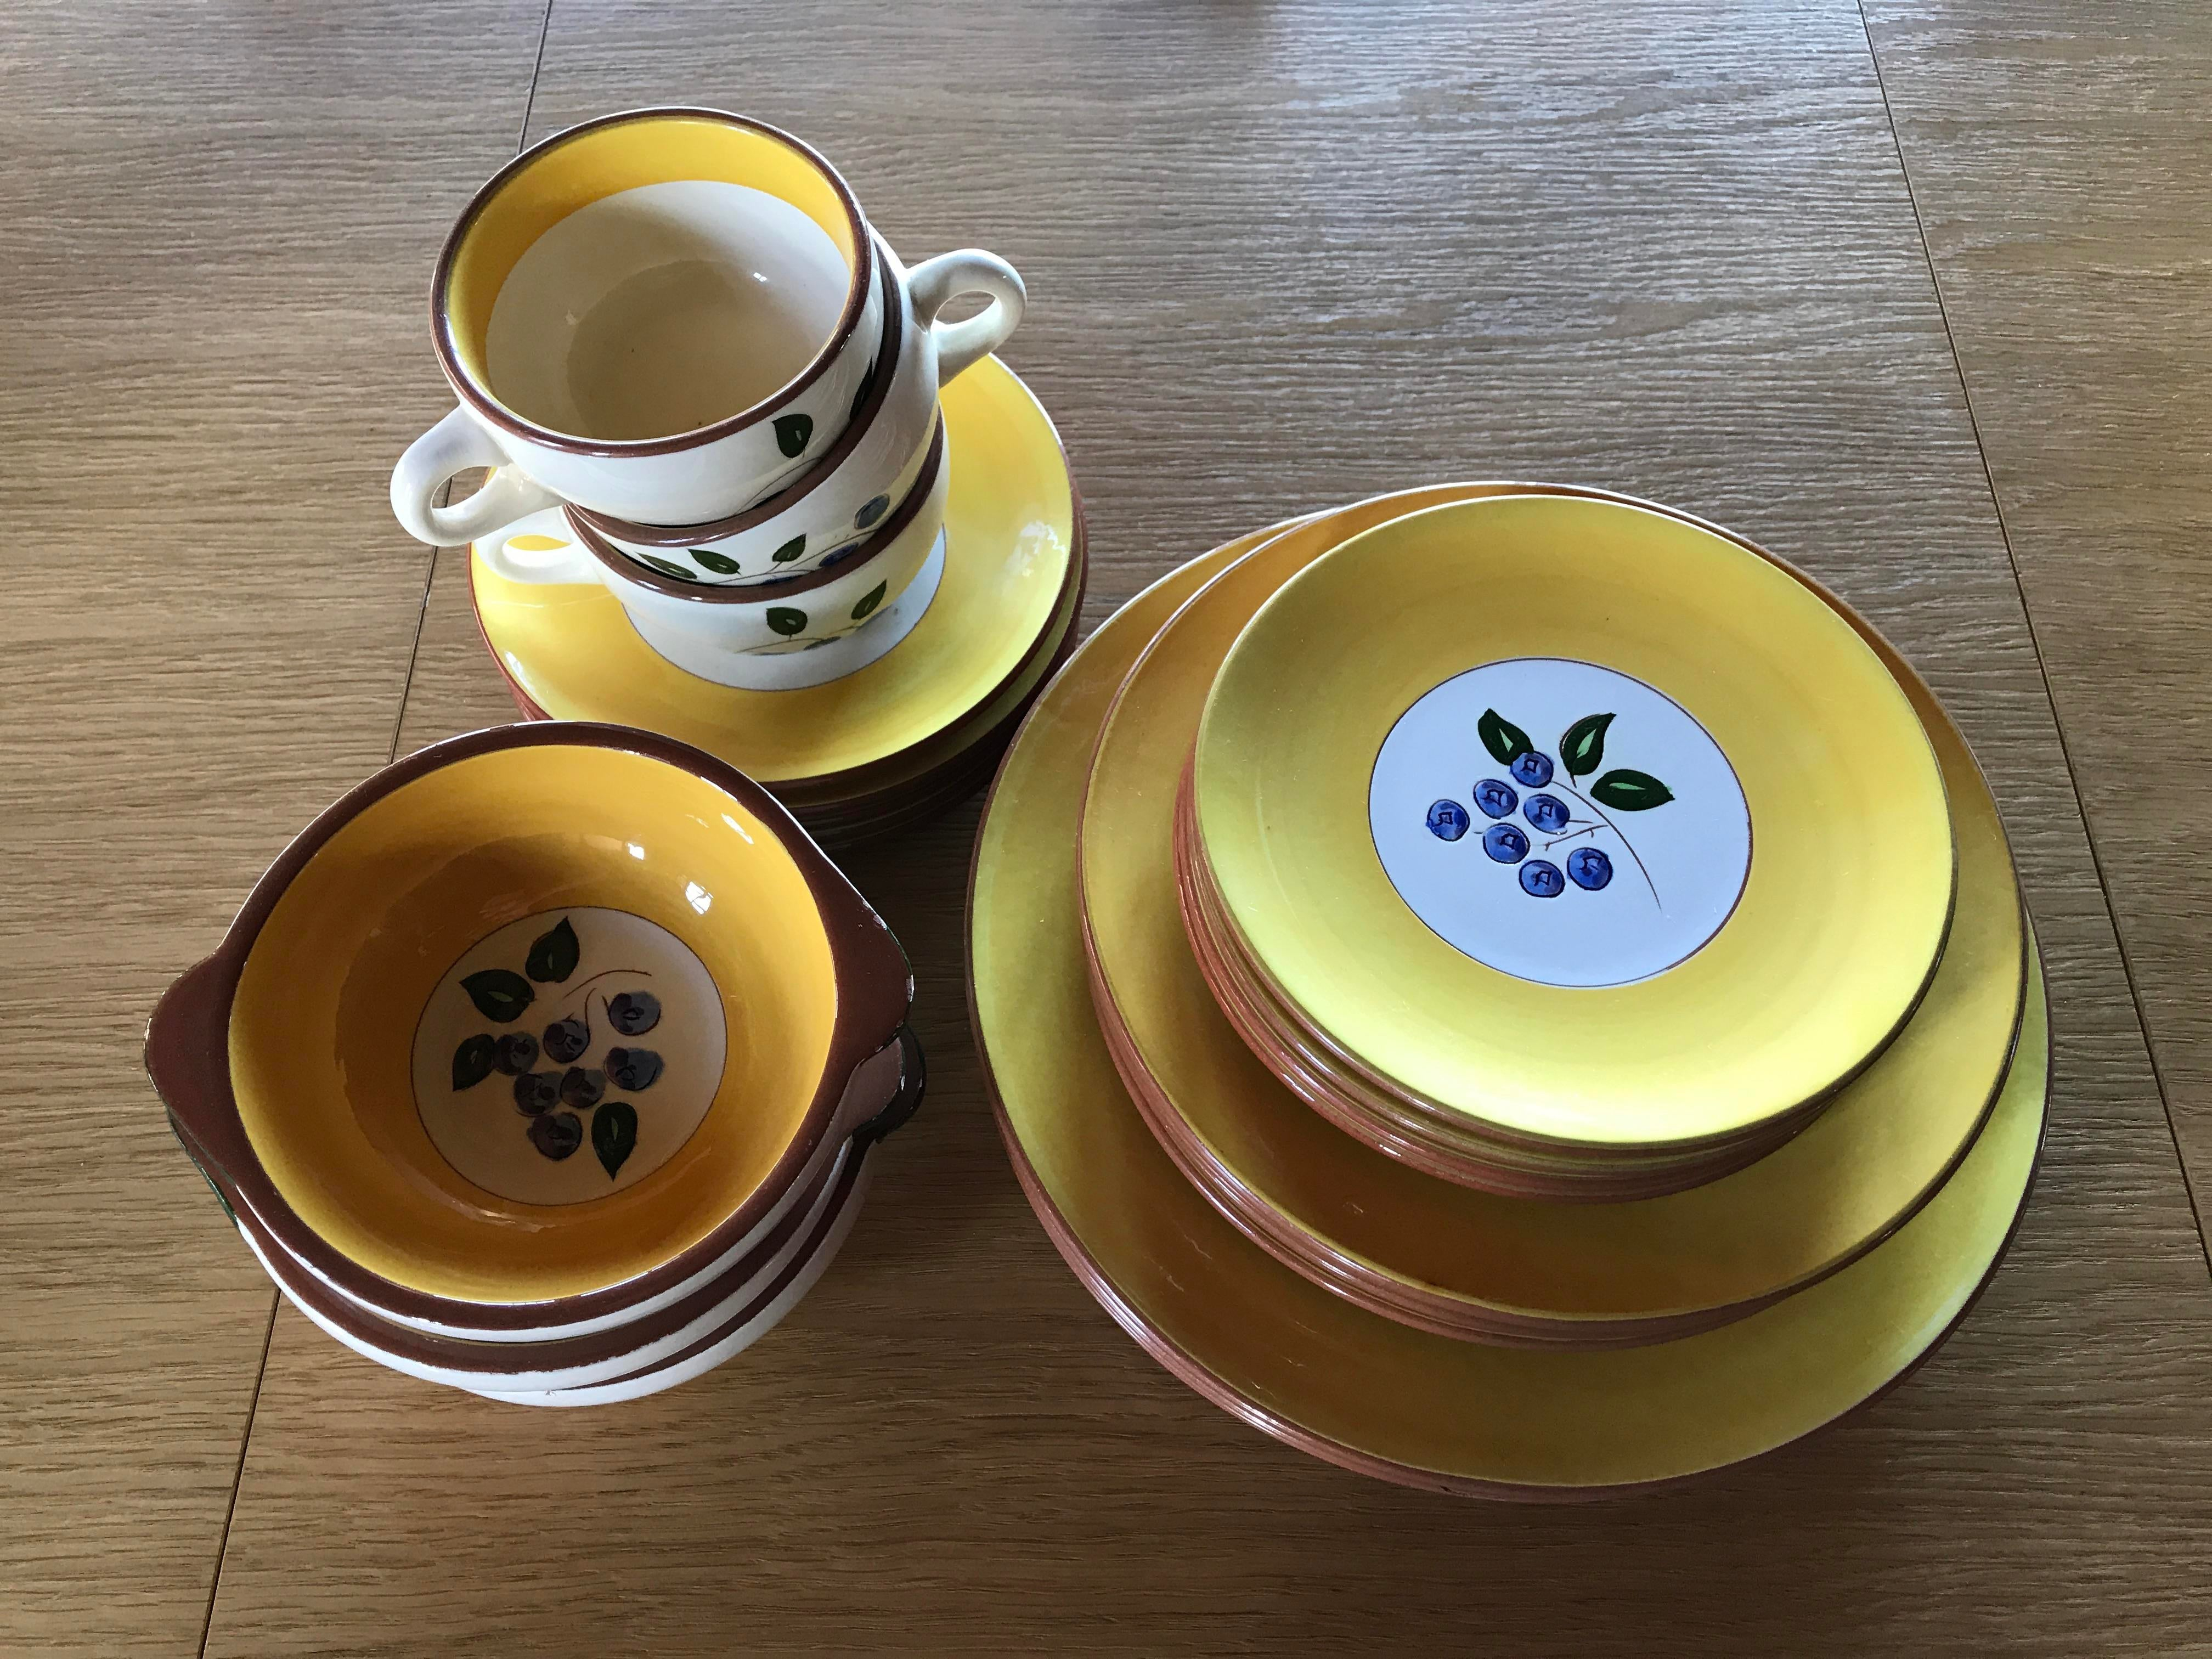 Stangl Pottery Blueberry Motif Yellow Dinnerware - Set of 22 - Image 2 of 10  sc 1 st  Chairish & Stangl Pottery Blueberry Motif Yellow Dinnerware - Set of 22 ...